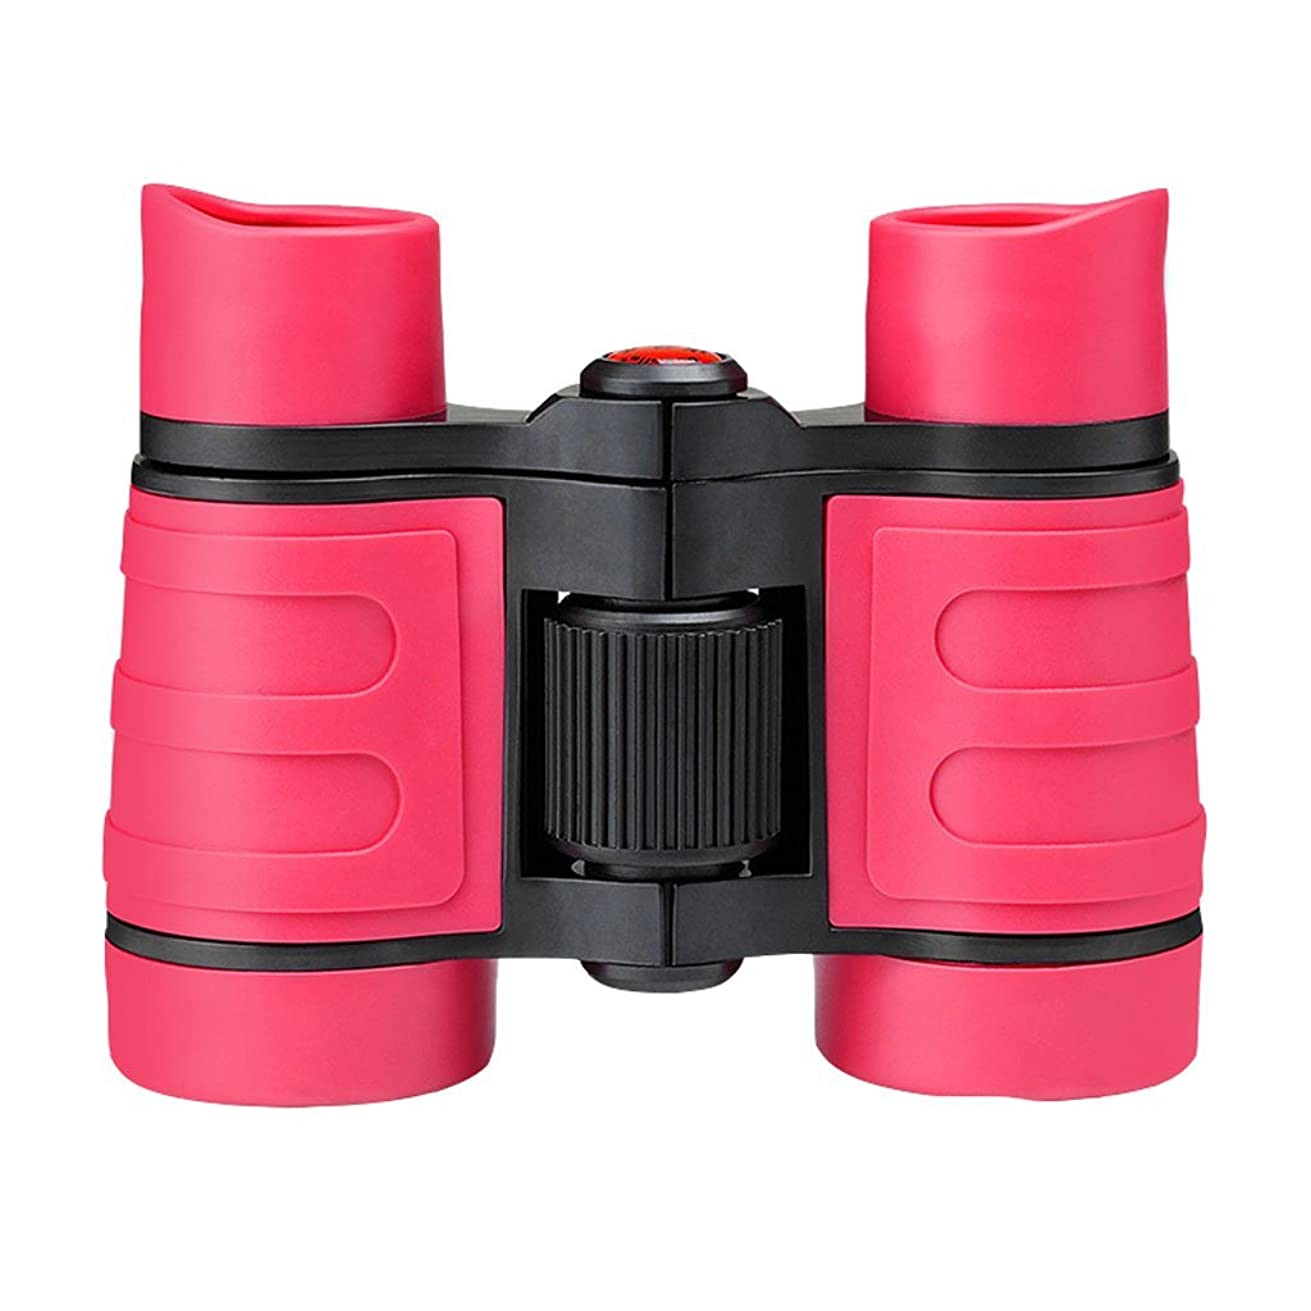 DUOER home |Optical Lens|eye Protection Does Not Hurt Vision|portable HD Children's Telescope (Color : Red)